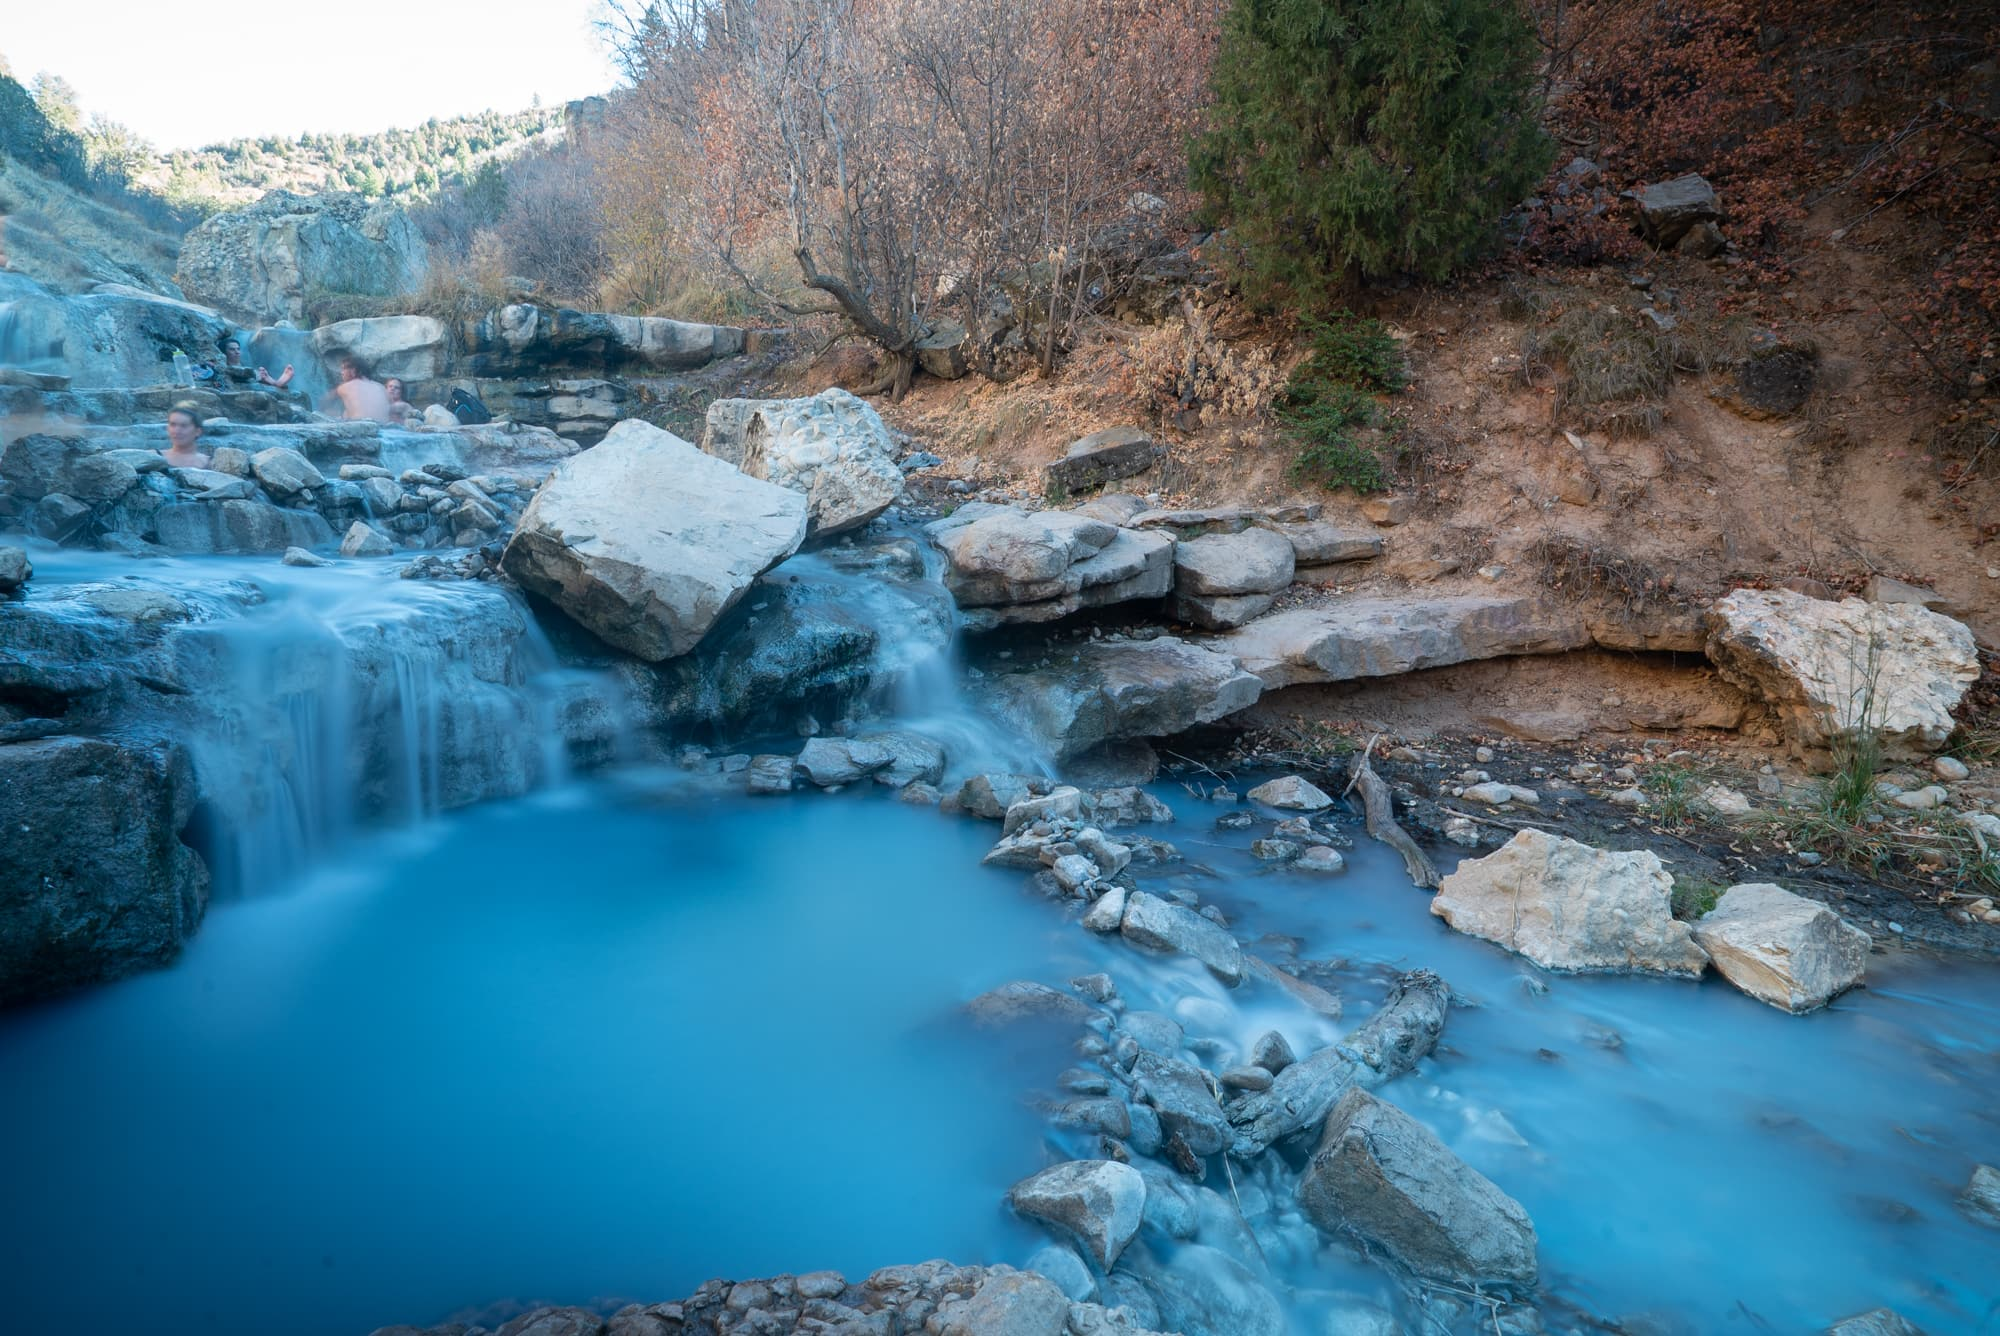 Diamond Fork Hot Springs // A round-up of the best hikes in Utah. Explore Utah's epic landscapes and get tips for tackling these bucketlist trails.